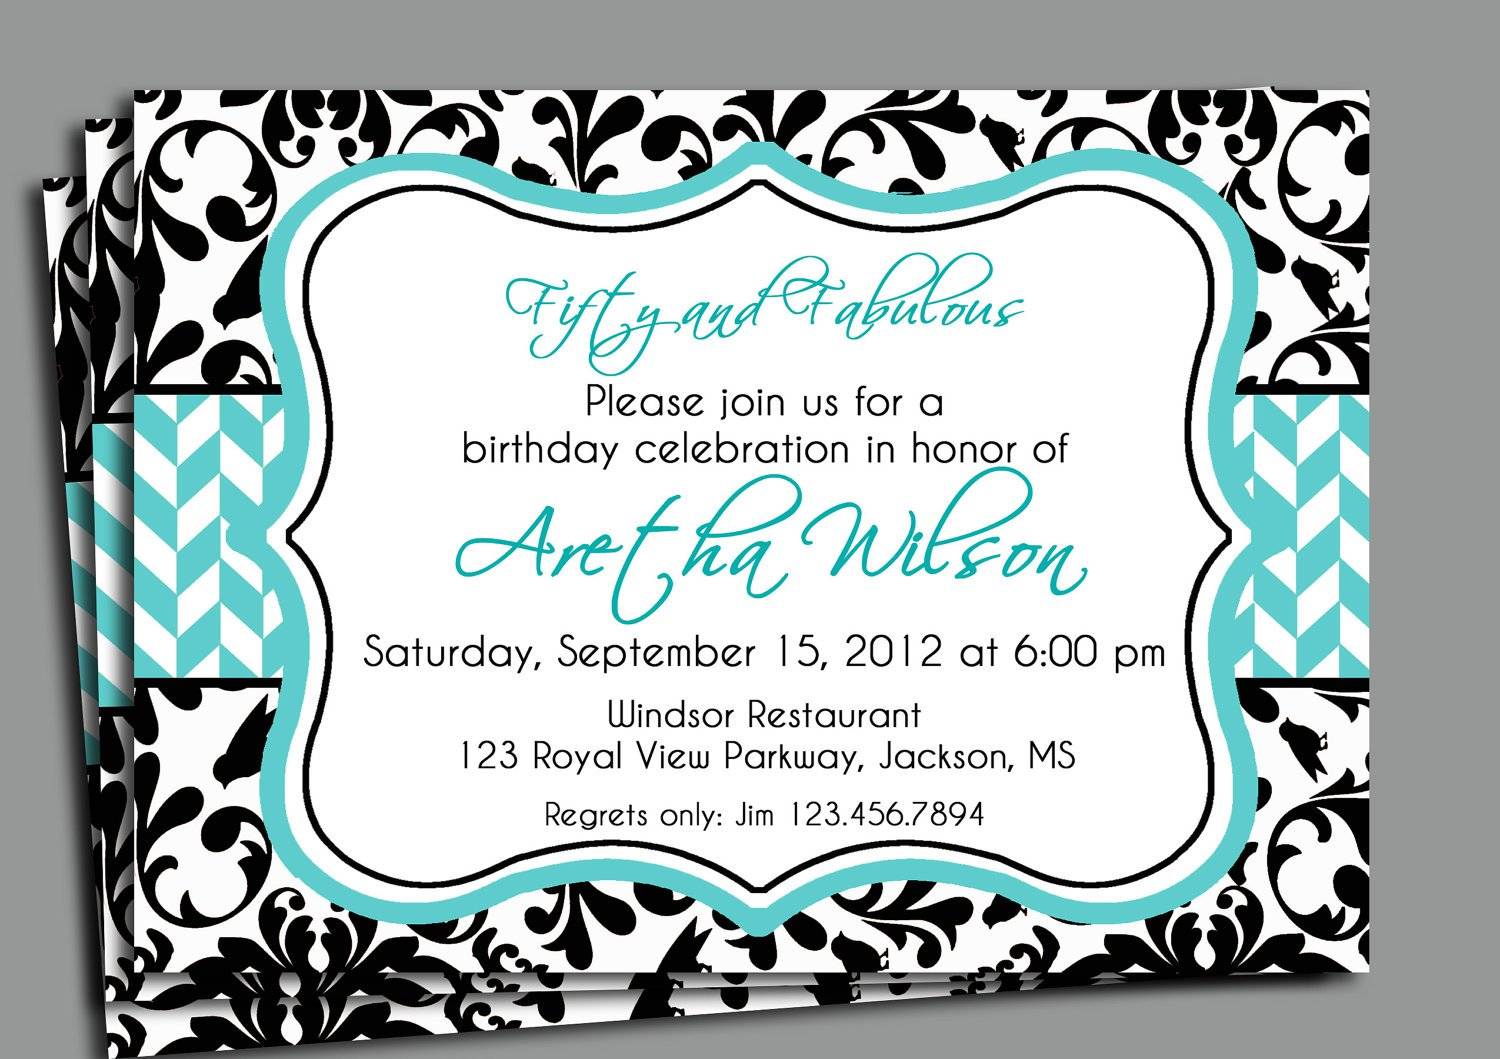 Birthday Invitation Wording Samples For Adults